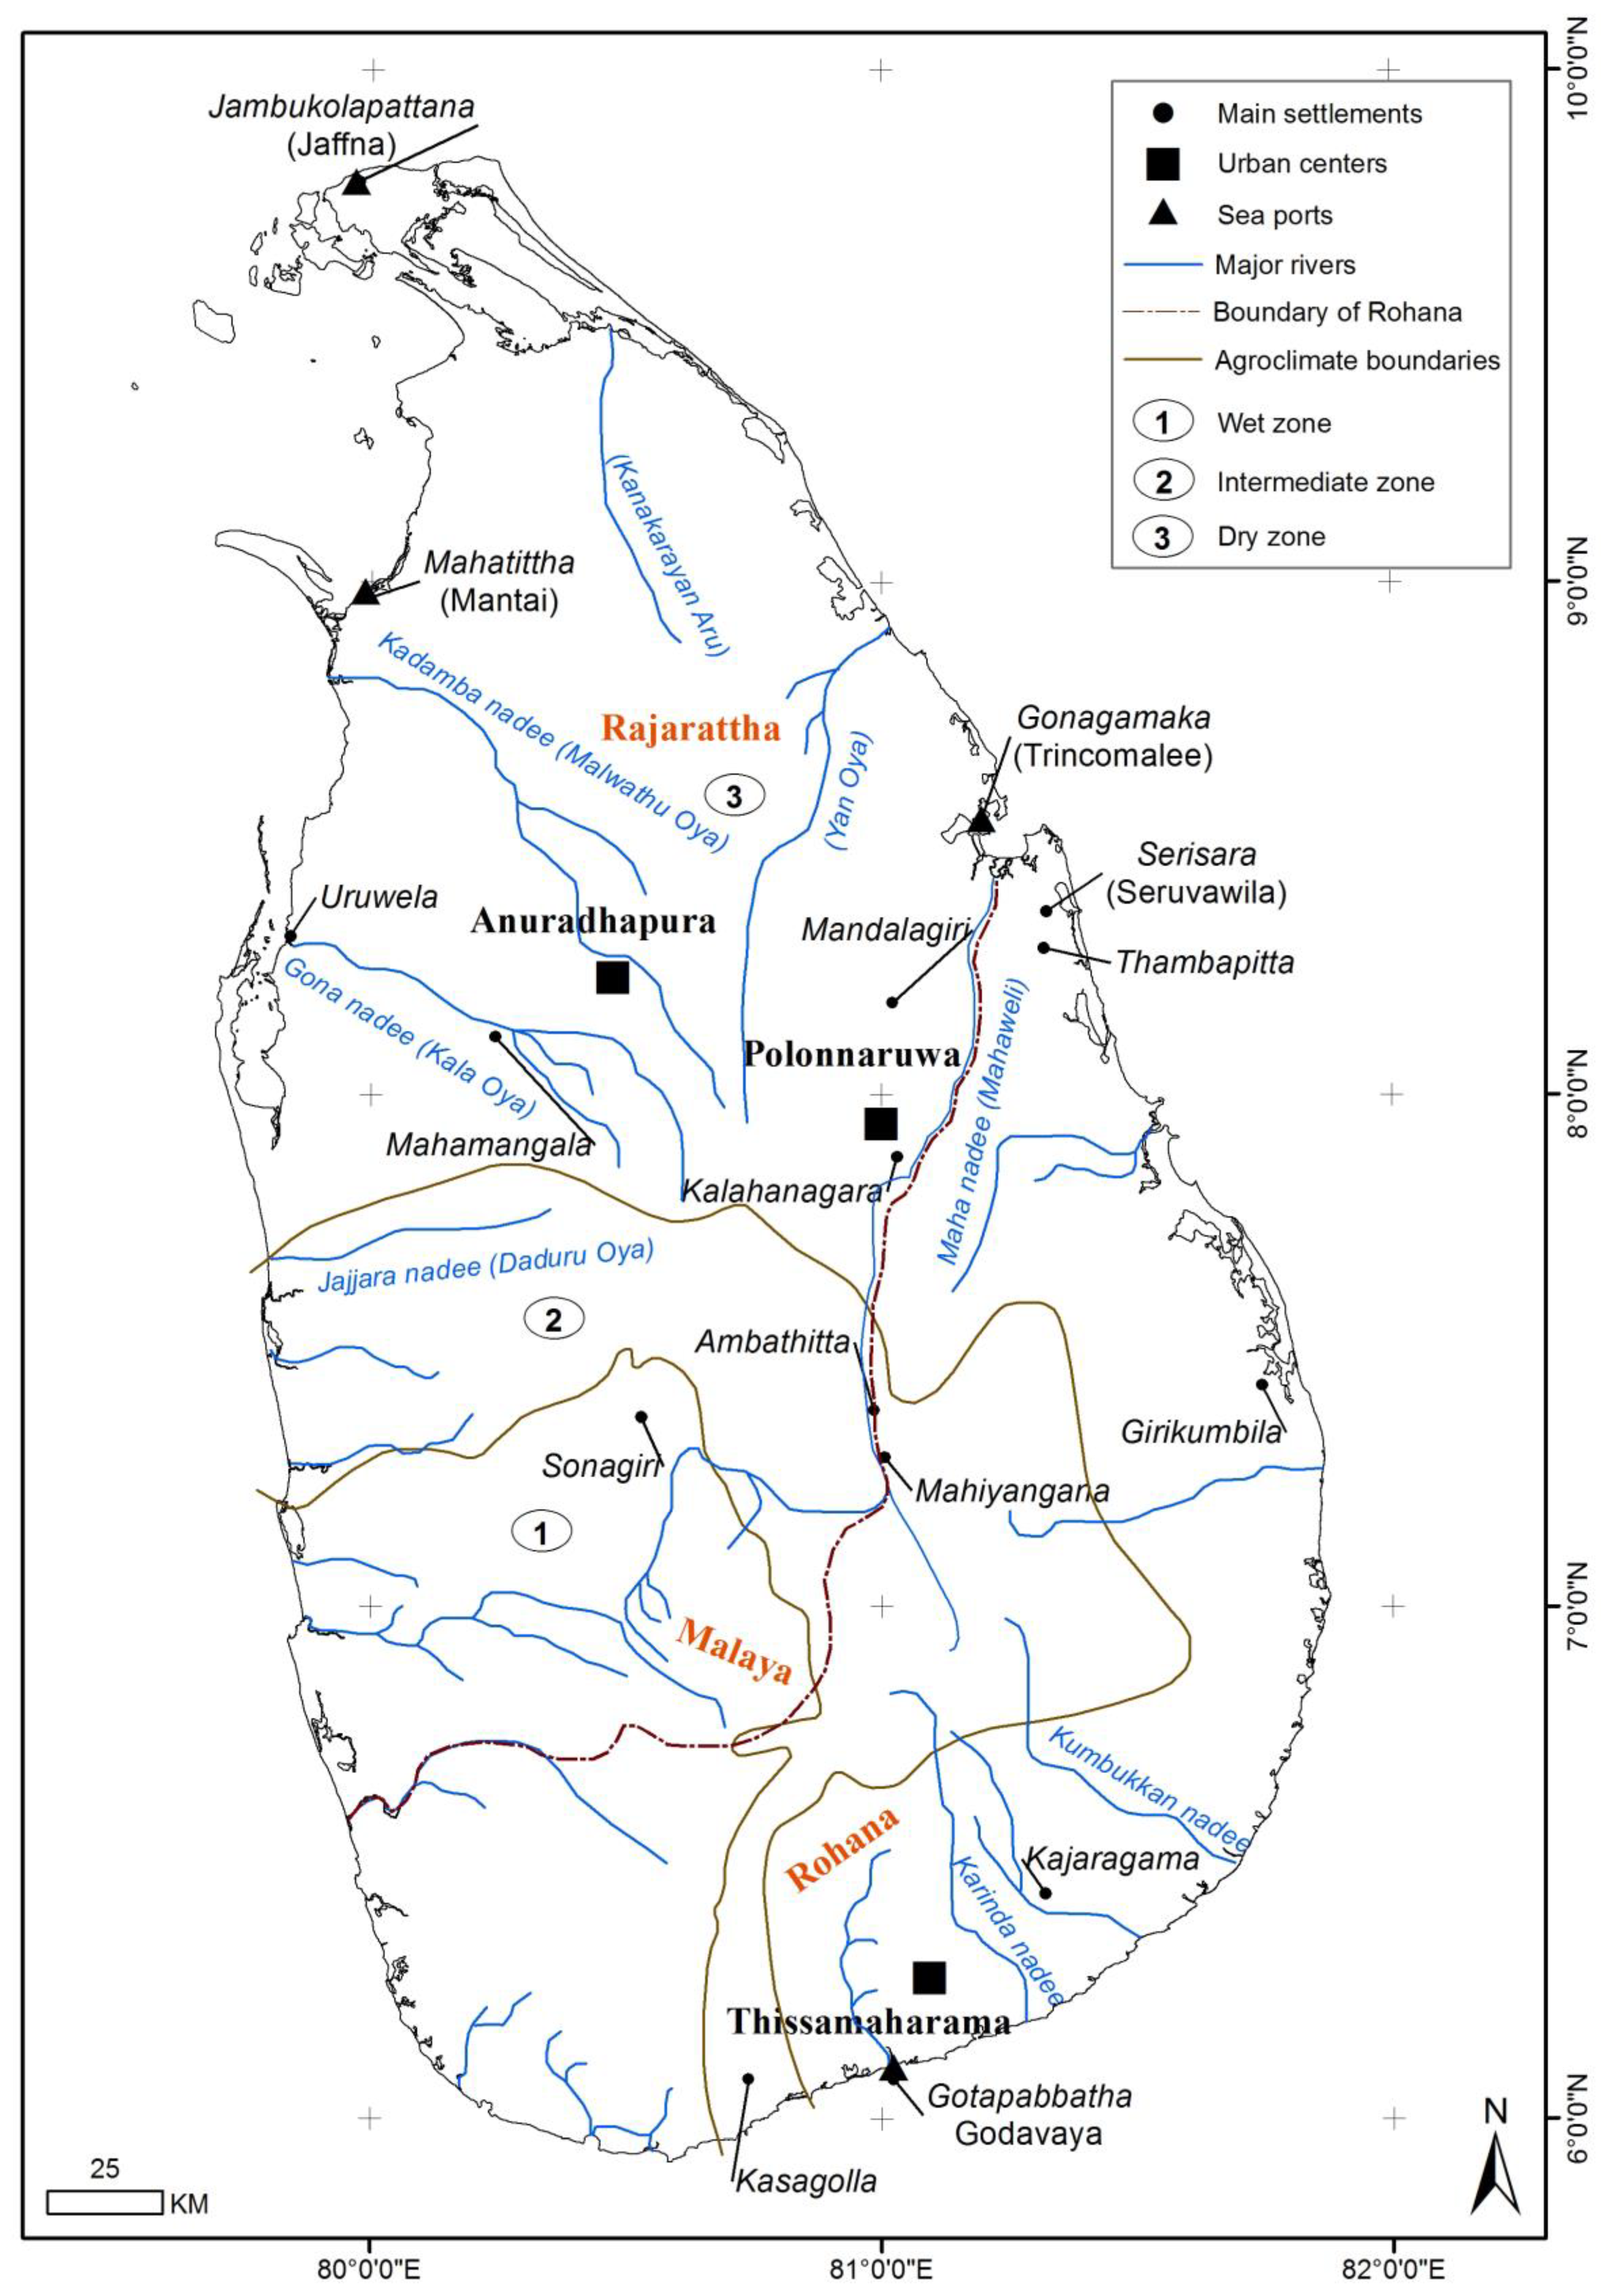 Water | Free Full-Text | Ancient Water Management and Governance in